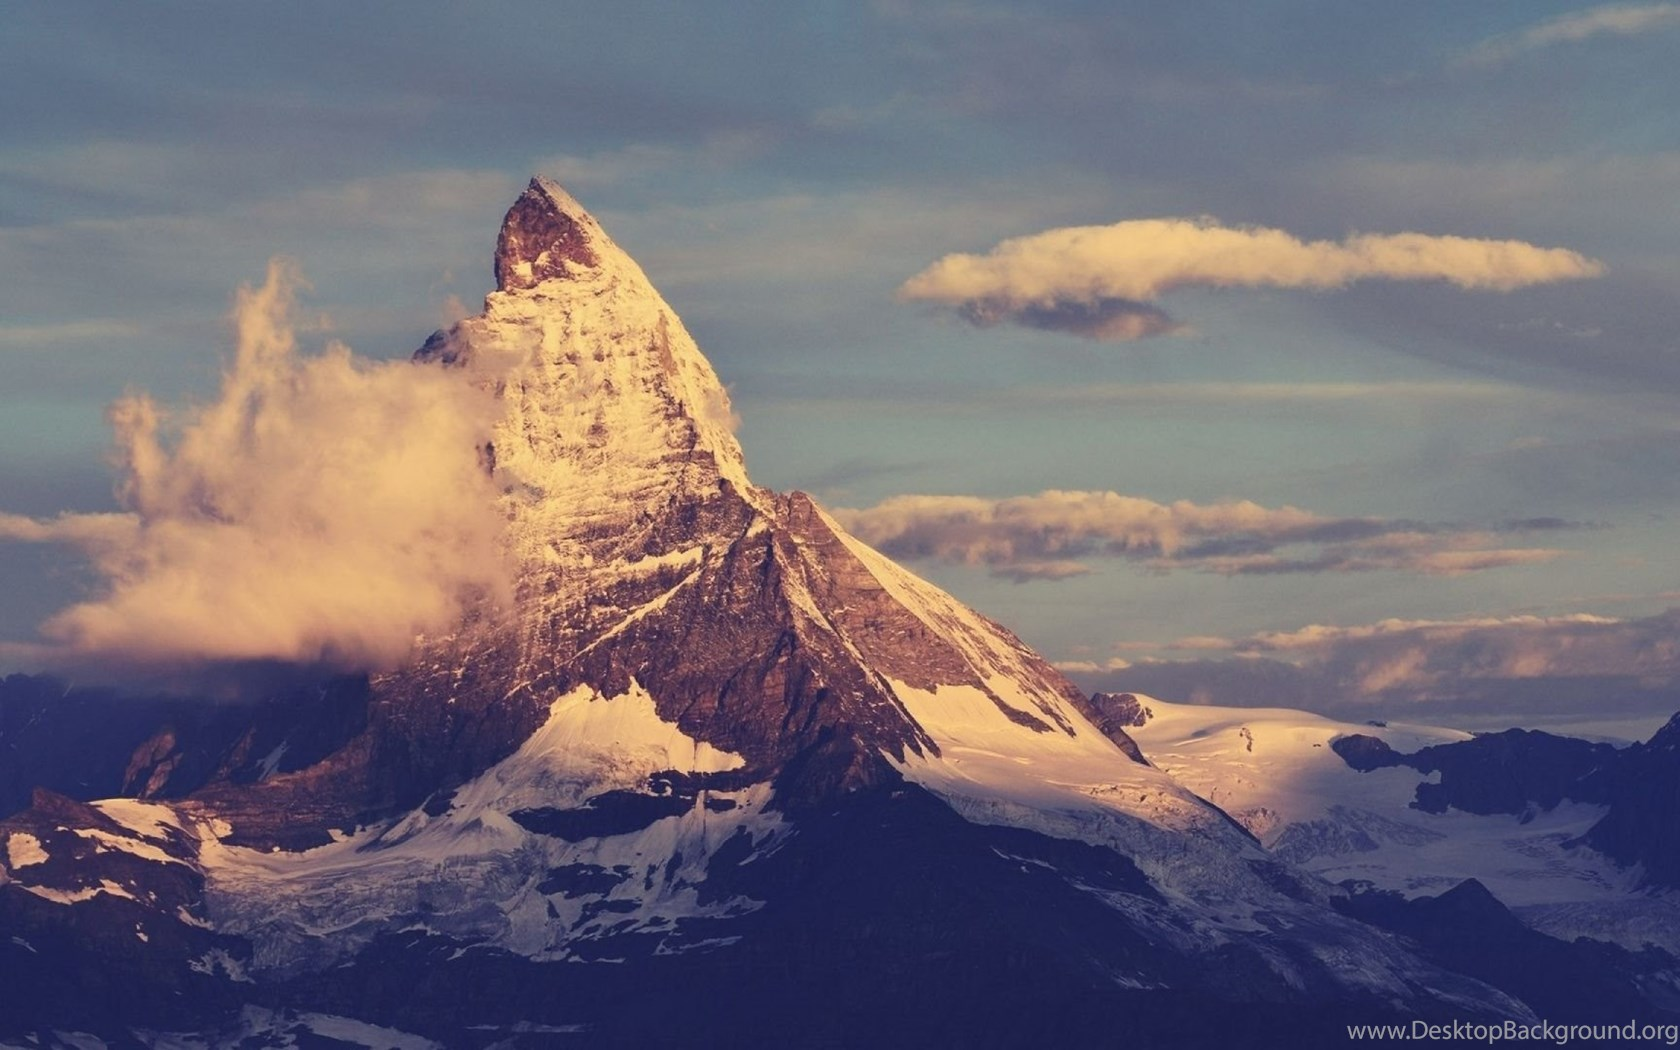 Must see Wallpaper Mac Pinterest - 120568_top-mac-mountain-wallpaper-images-for-pinterest_1920x1080_h  Pictures_619744.jpg